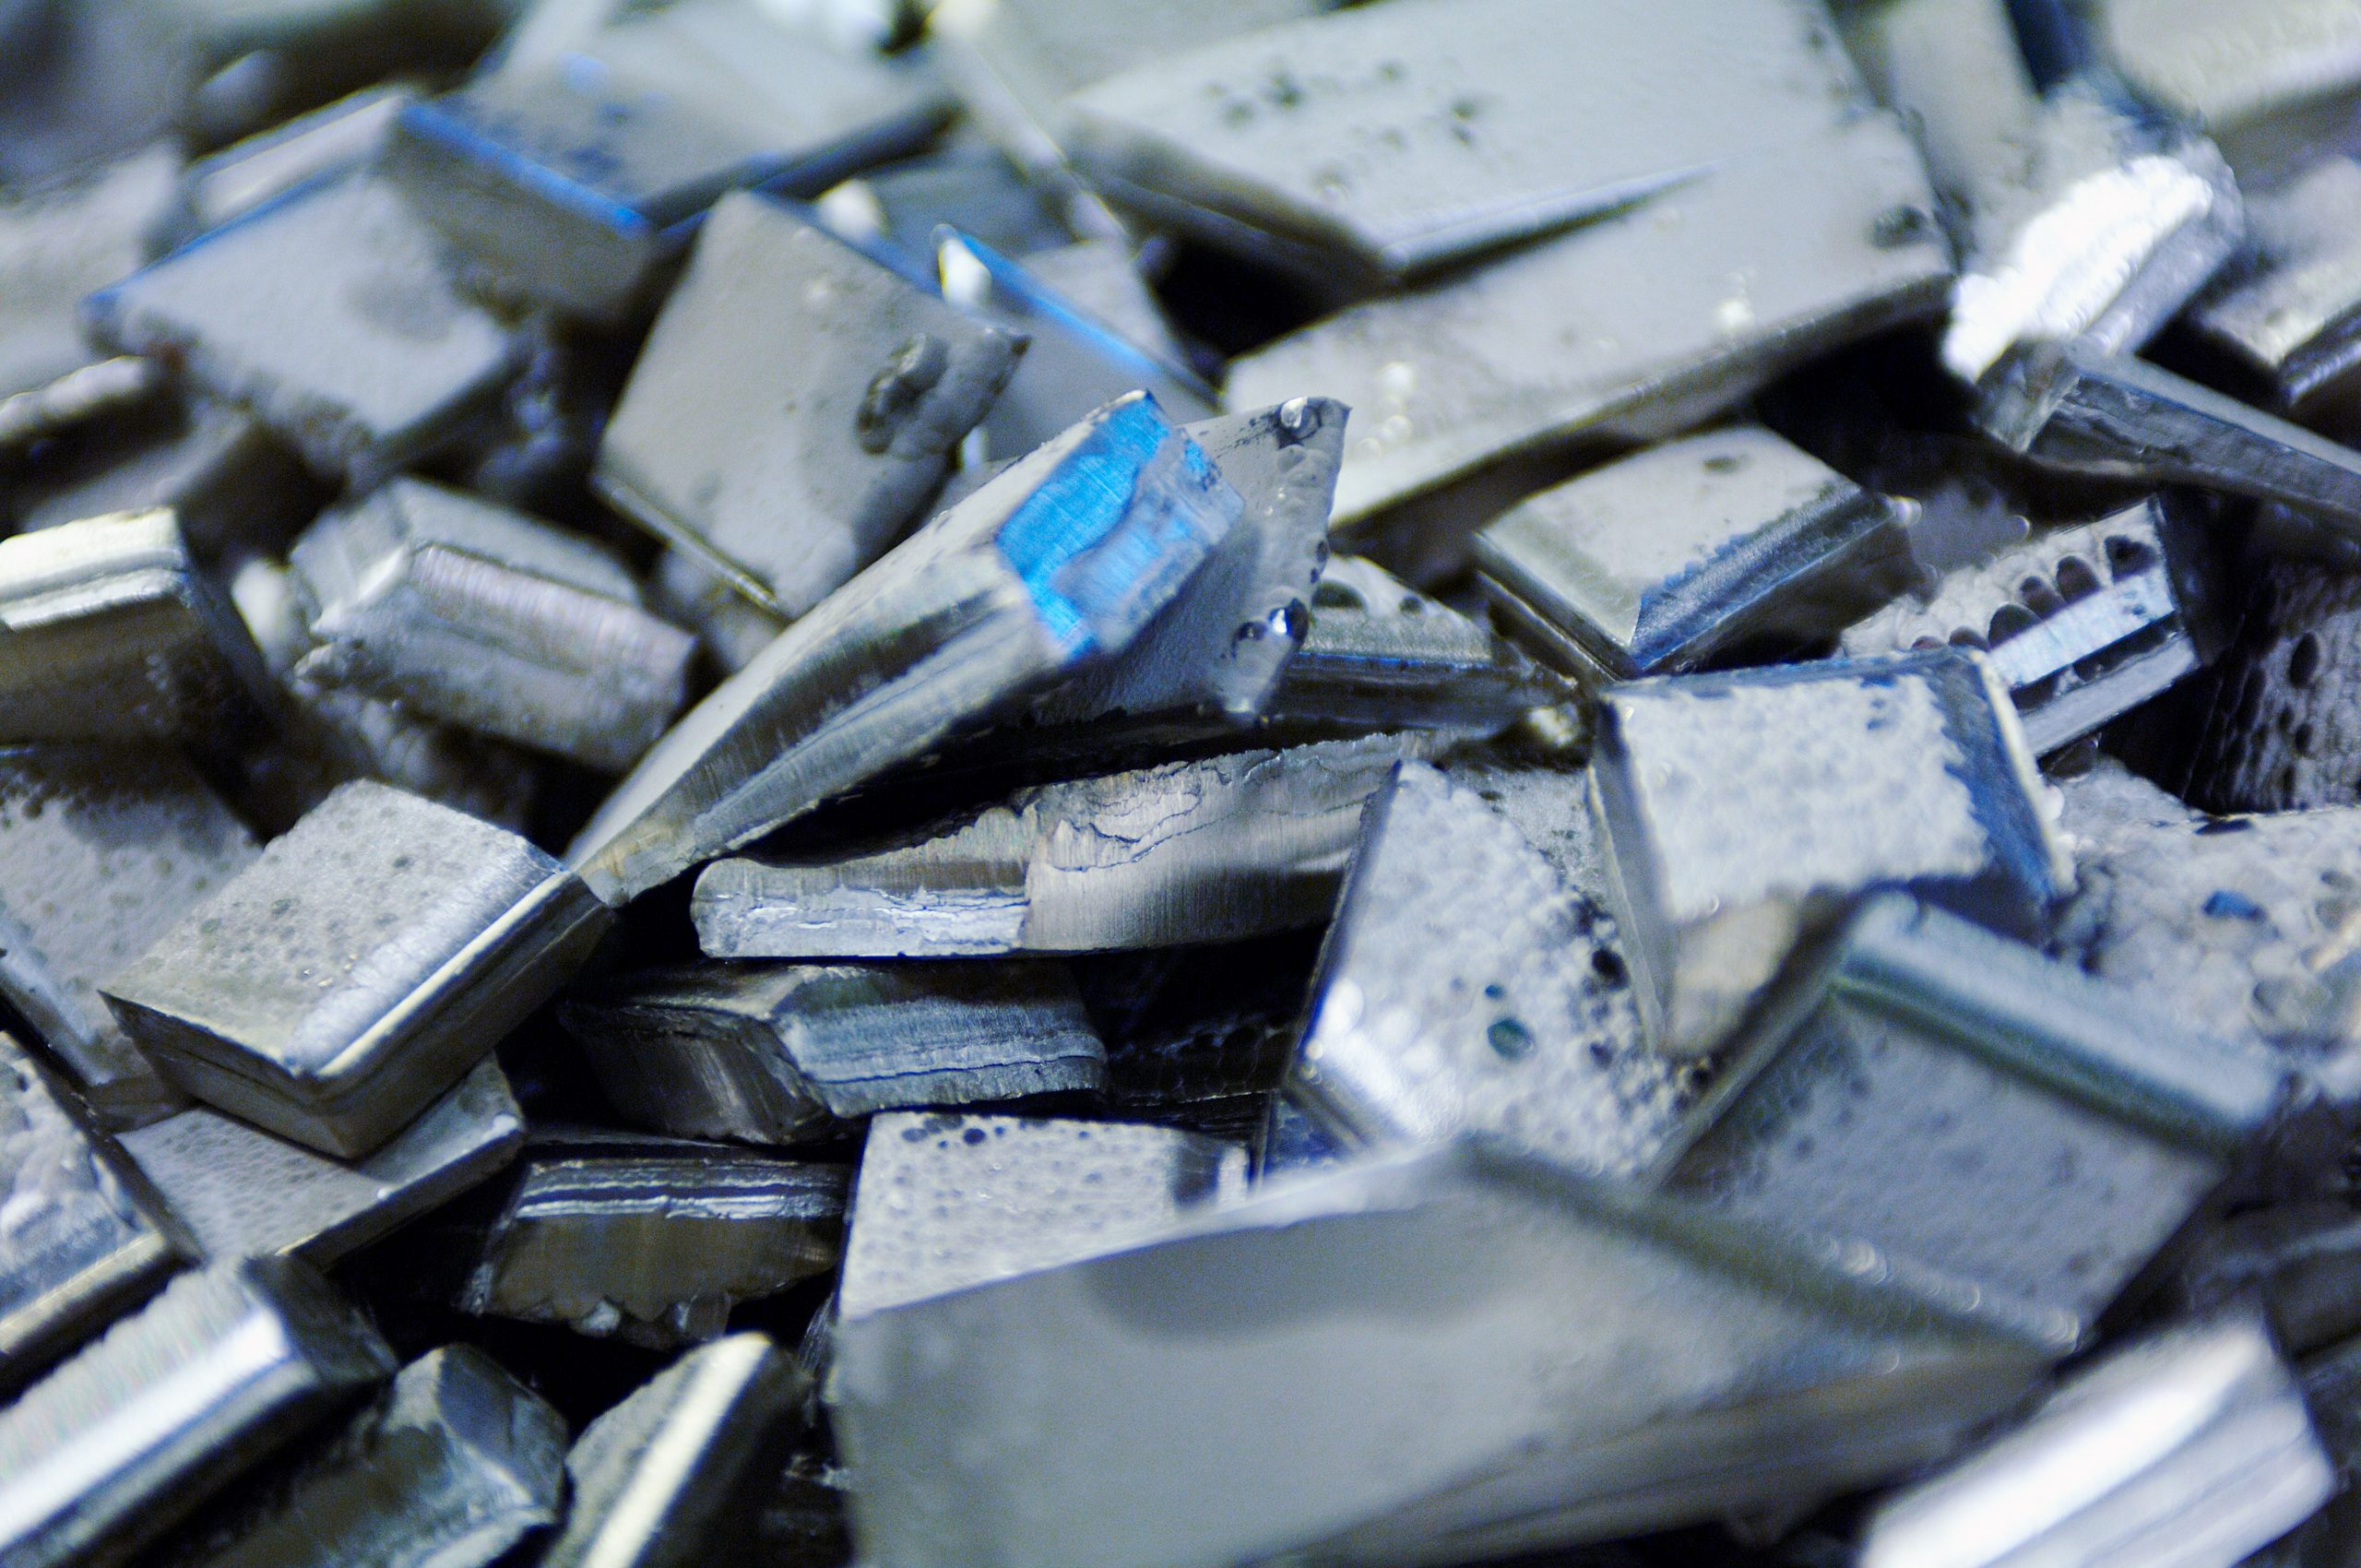 Booming stainless steel output to sustain nickel prices for months